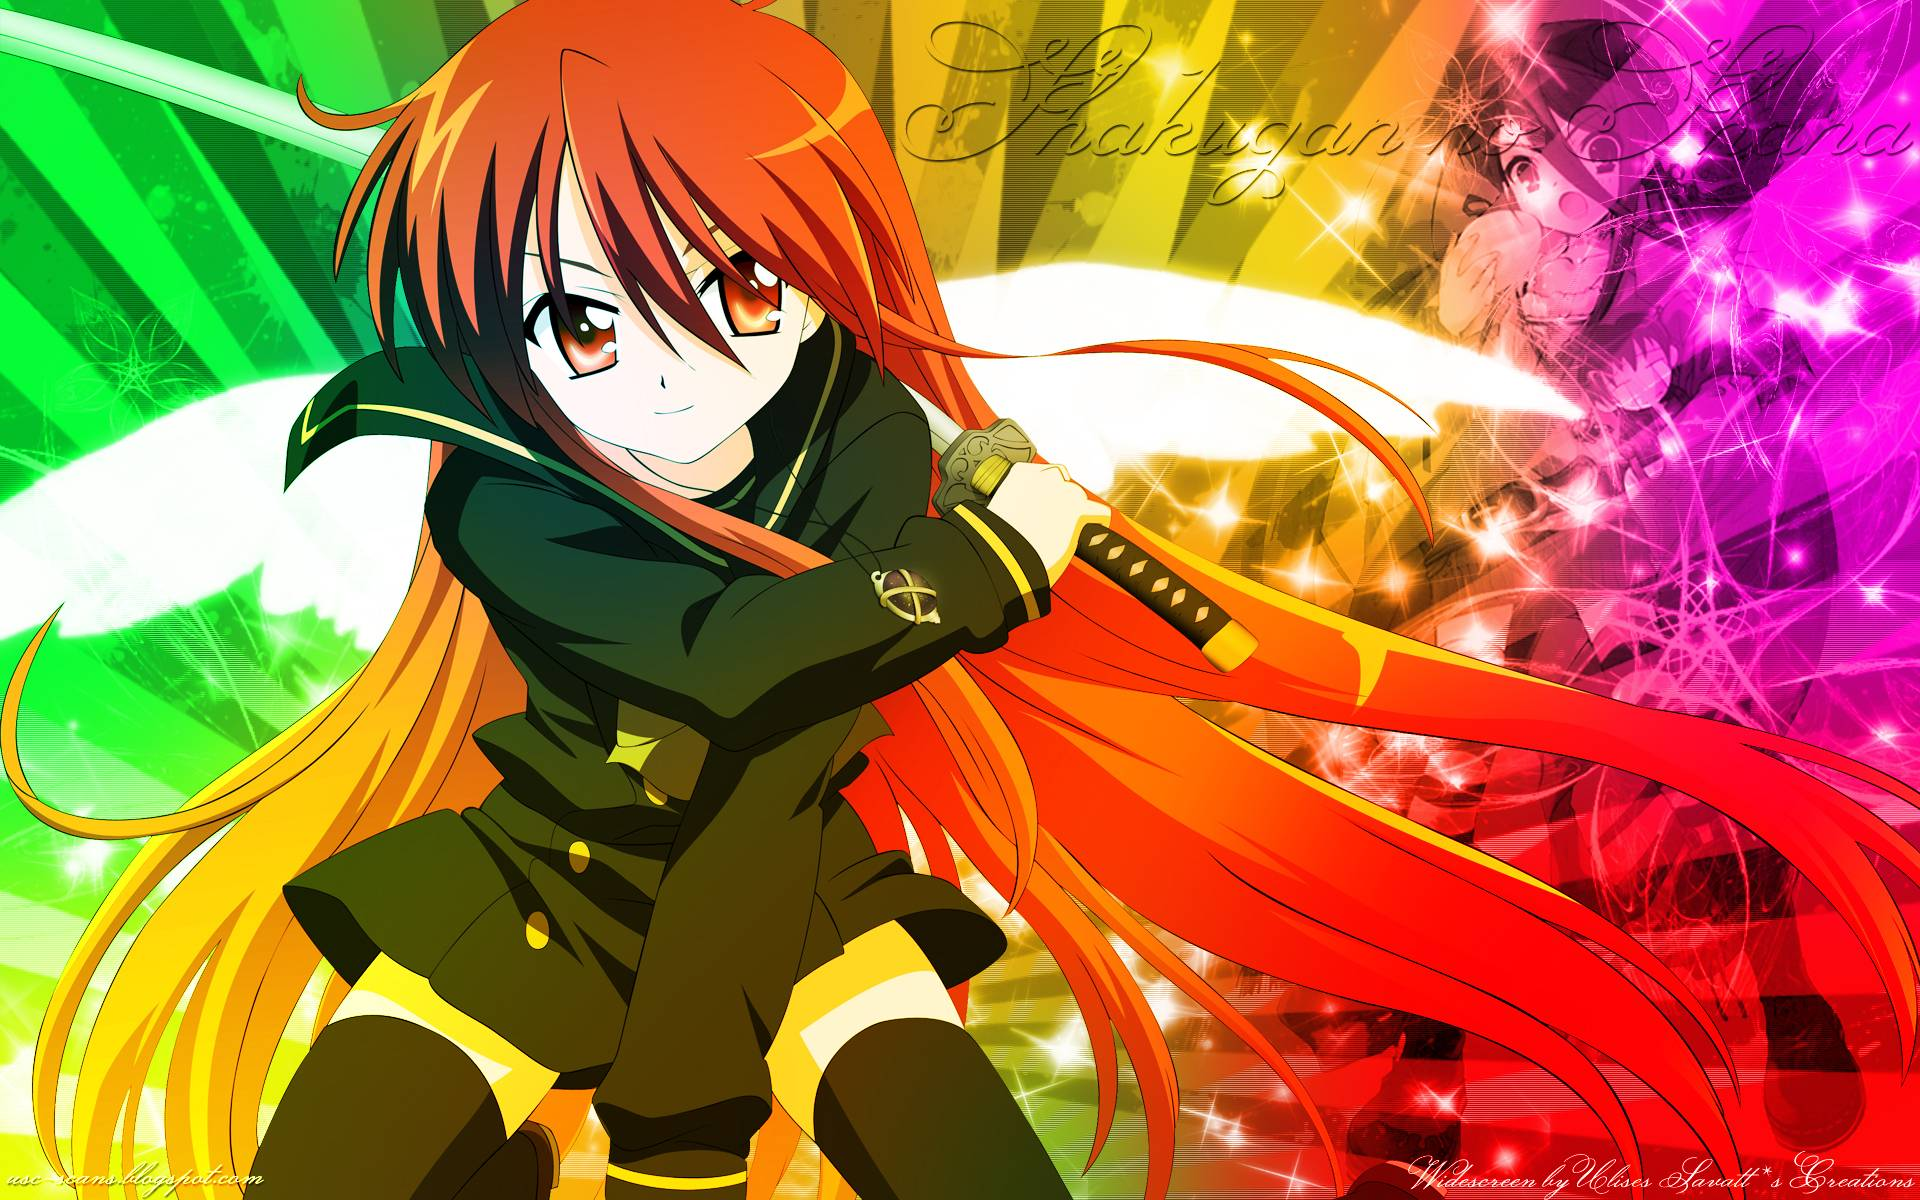 Mlwapp v2 · live wallpaper app for android · uninstall mlwapp · contact. Cool Anime Backgrounds - Wallpaper Cave